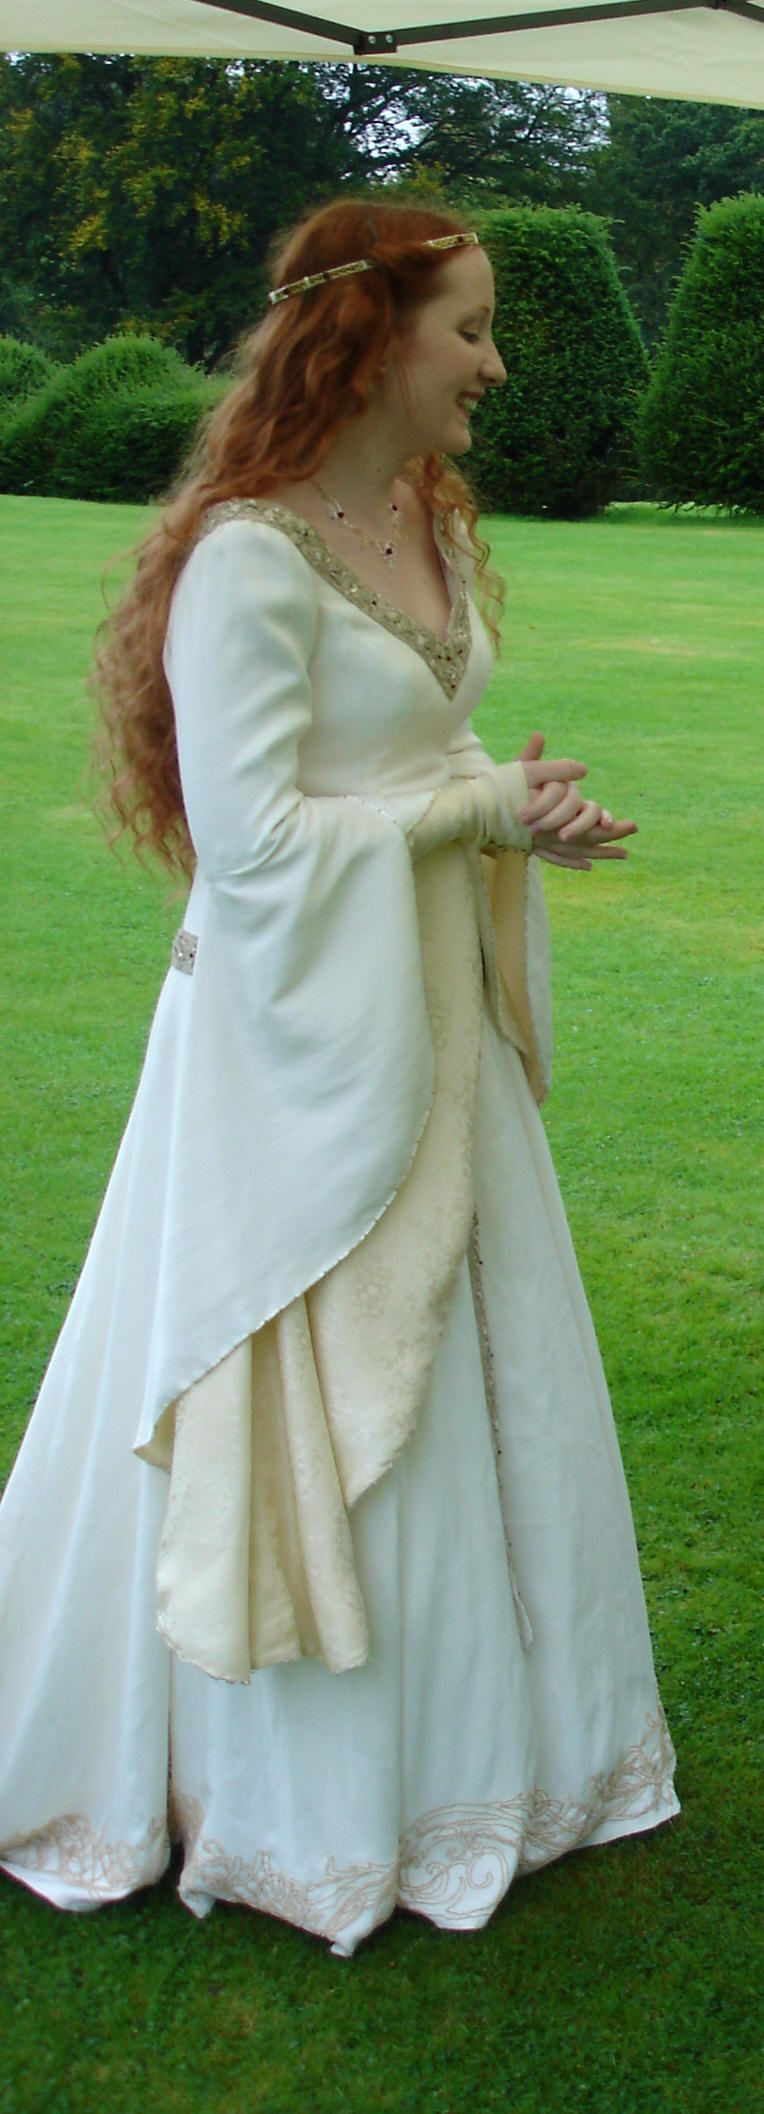 bell sleeve wedding dress - Google Search | Medieval Inspirations ...